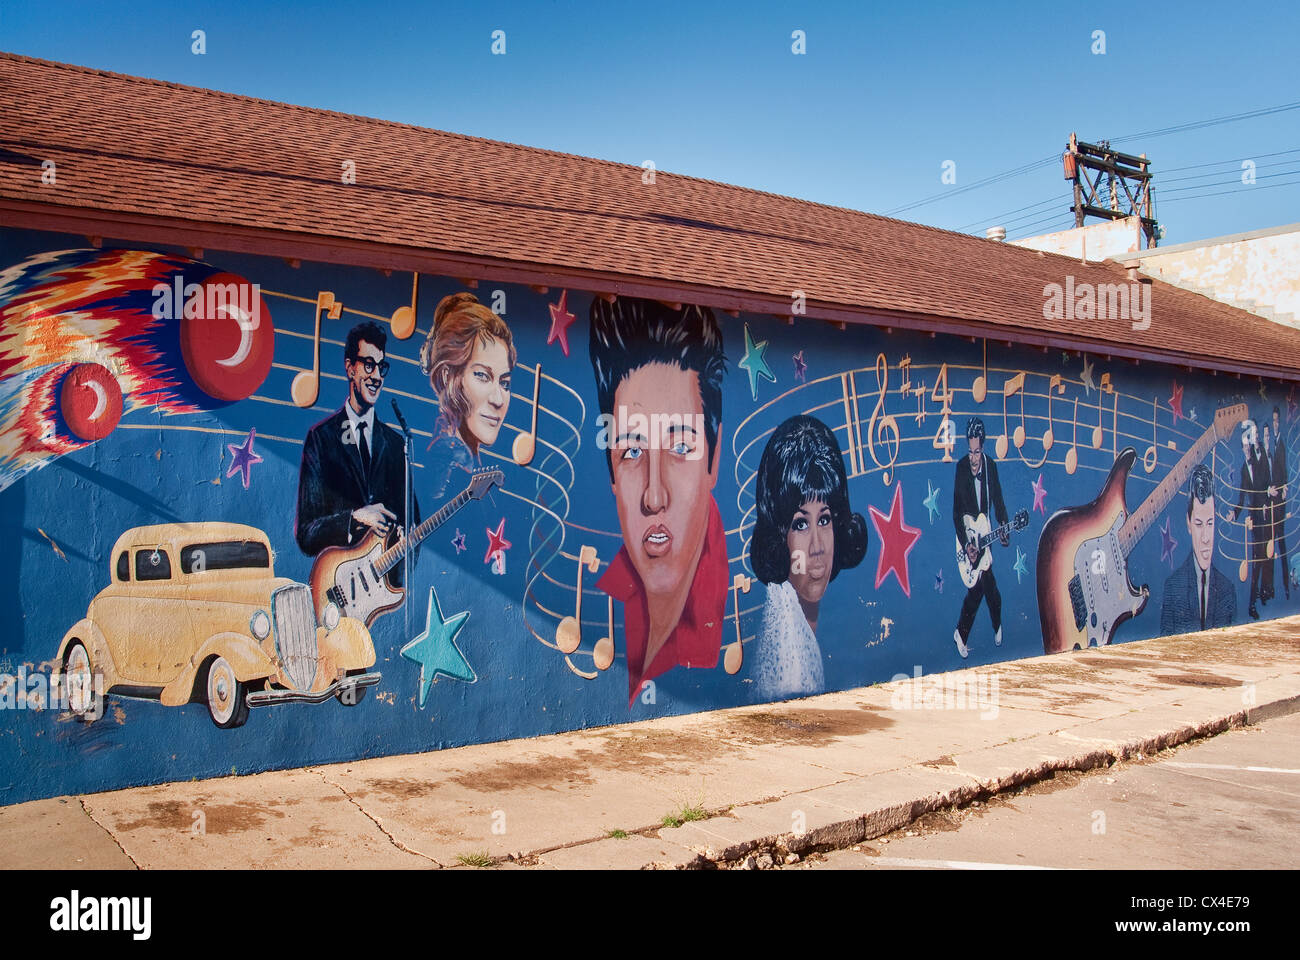 Elvis Presley, Buddy Holly, Aretha Franklin, Chuck Berry and other 1950's rock'n'roll stars in mural - Stock Image